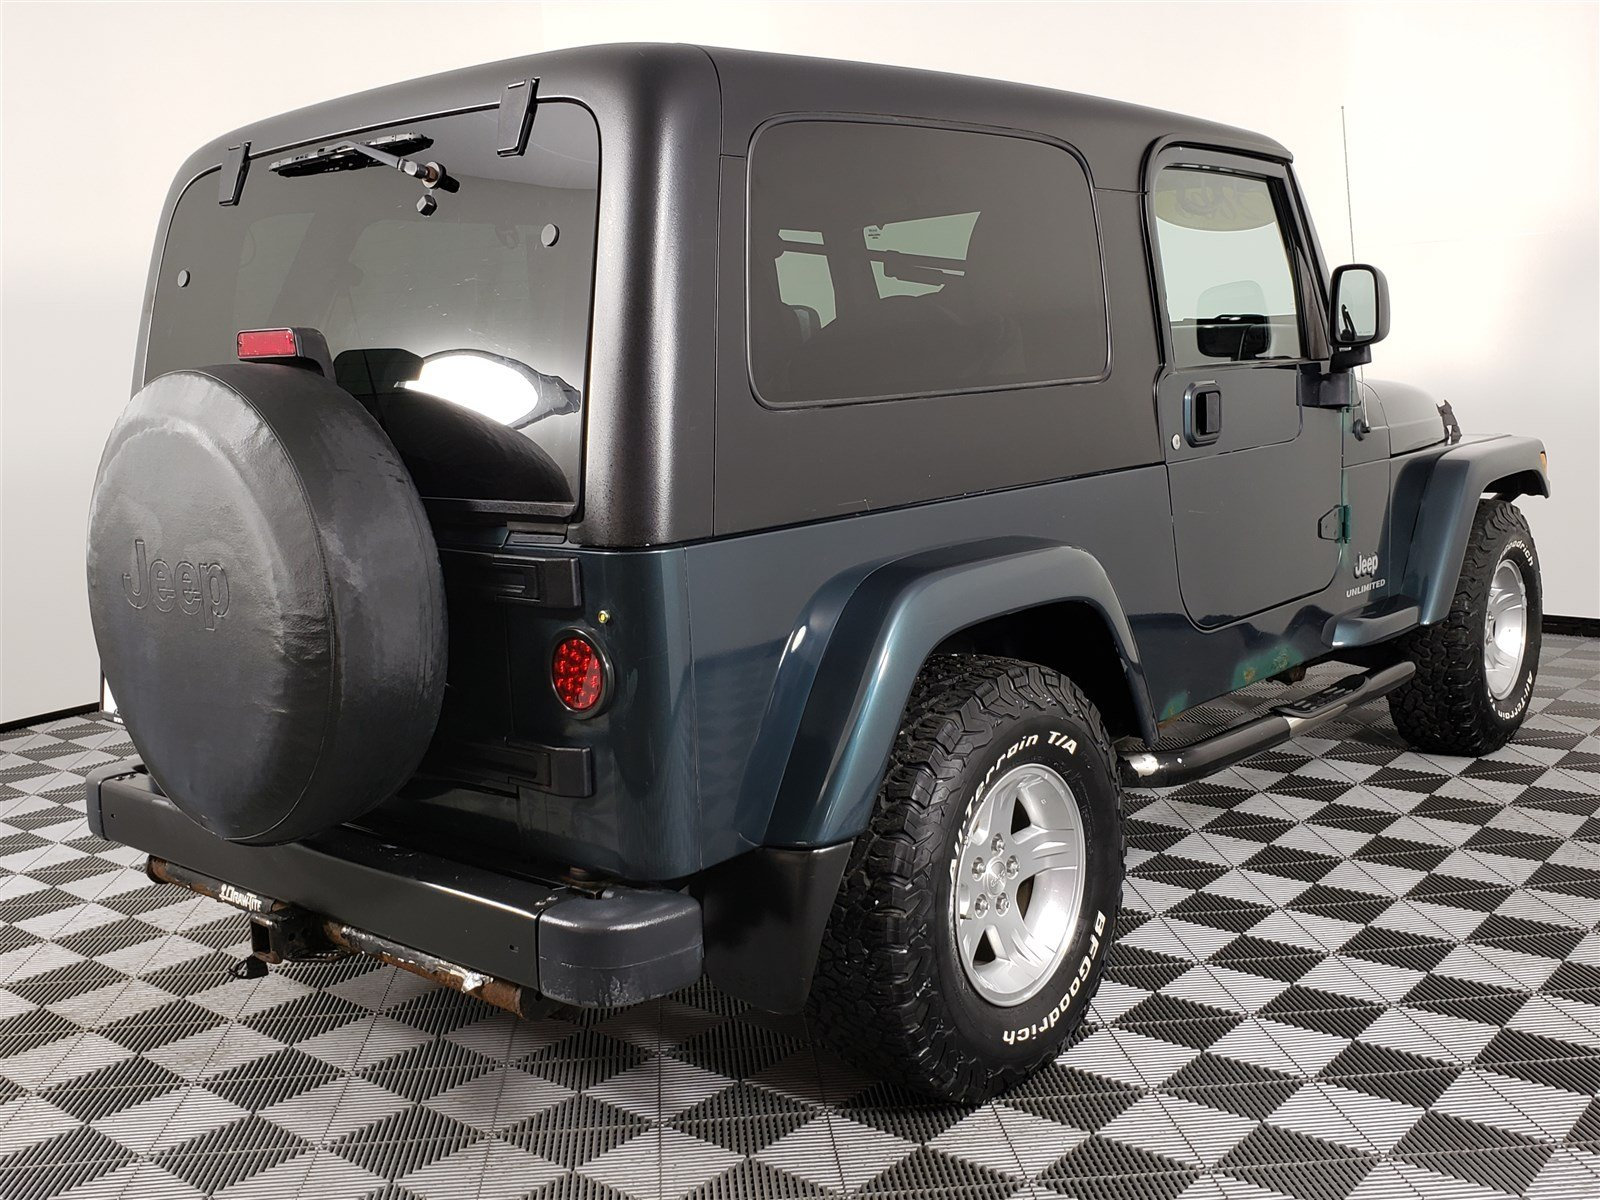 Pre-Owned 2006 Jeep Wrangler Unlimited LWB